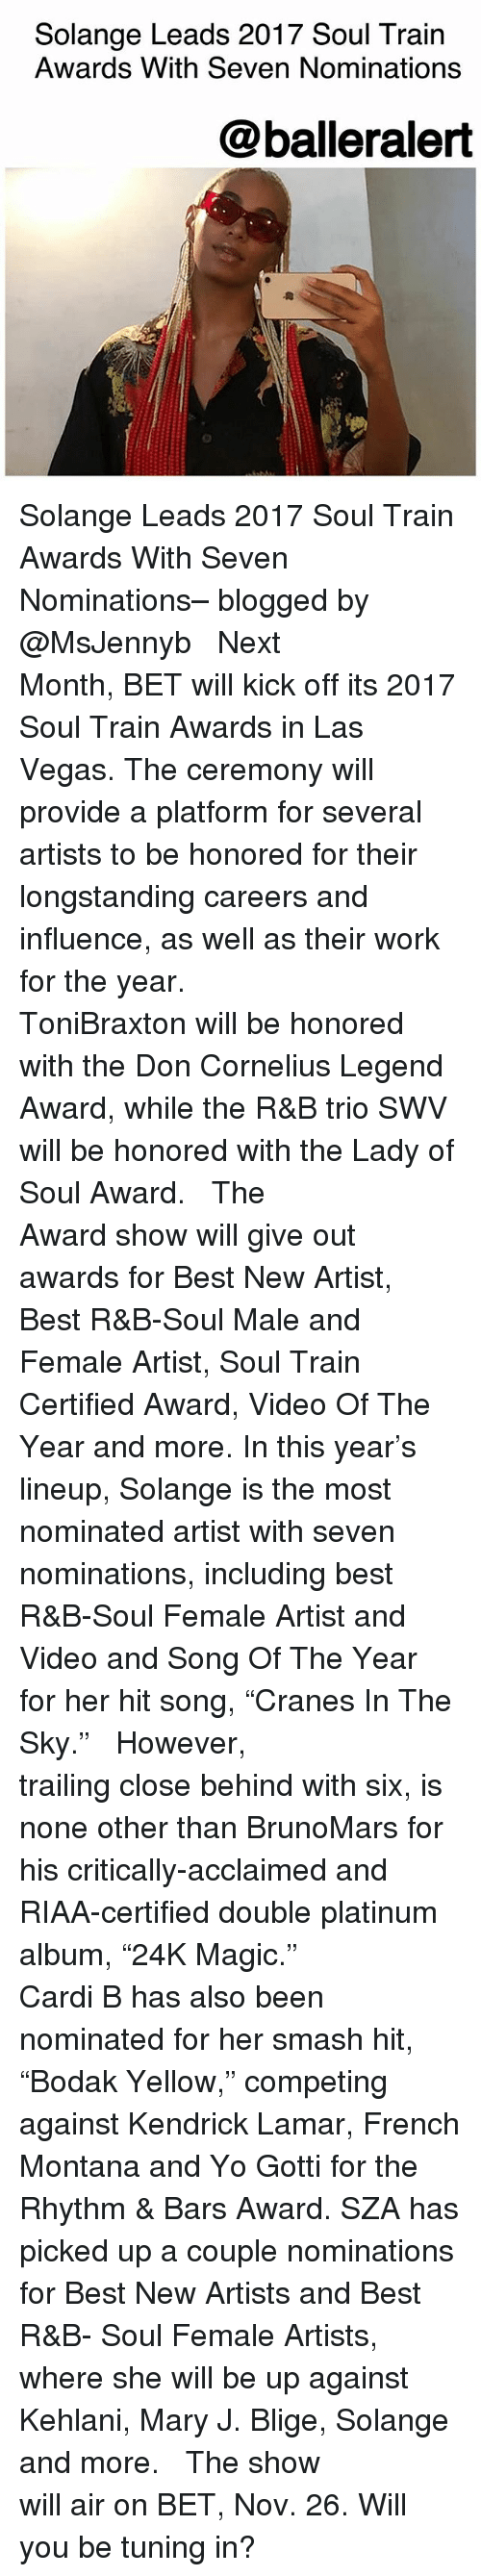 "mary j: Solange Leads 2017 Soul Train  Awards With Seven Nominations  @balleralert Solange Leads 2017 Soul Train Awards With Seven Nominations– blogged by @MsJennyb ⠀⠀⠀⠀⠀⠀⠀ ⠀⠀⠀⠀⠀⠀⠀ Next Month, BET will kick off its 2017 Soul Train Awards in Las Vegas. The ceremony will provide a platform for several artists to be honored for their longstanding careers and influence, as well as their work for the year. ⠀⠀⠀⠀⠀⠀⠀ ⠀⠀⠀⠀⠀⠀⠀ ToniBraxton will be honored with the Don Cornelius Legend Award, while the R&B trio SWV will be honored with the Lady of Soul Award. ⠀⠀⠀⠀⠀⠀⠀ ⠀⠀⠀⠀⠀⠀⠀ The Award show will give out awards for Best New Artist, Best R&B-Soul Male and Female Artist, Soul Train Certified Award, Video Of The Year and more. In this year's lineup, Solange is the most nominated artist with seven nominations, including best R&B-Soul Female Artist and Video and Song Of The Year for her hit song, ""Cranes In The Sky."" ⠀⠀⠀⠀⠀⠀⠀ ⠀⠀⠀⠀⠀⠀⠀ However, trailing close behind with six, is none other than BrunoMars for his critically-acclaimed and RIAA-certified double platinum album, ""24K Magic."" ⠀⠀⠀⠀⠀⠀⠀ ⠀⠀⠀⠀⠀⠀⠀ Cardi B has also been nominated for her smash hit, ""Bodak Yellow,"" competing against Kendrick Lamar, French Montana and Yo Gotti for the Rhythm & Bars Award. SZA has picked up a couple nominations for Best New Artists and Best R&B- Soul Female Artists, where she will be up against Kehlani, Mary J. Blige, Solange and more. ⠀⠀⠀⠀⠀⠀⠀ ⠀⠀⠀⠀⠀⠀⠀ The show will air on BET, Nov. 26. Will you be tuning in?"